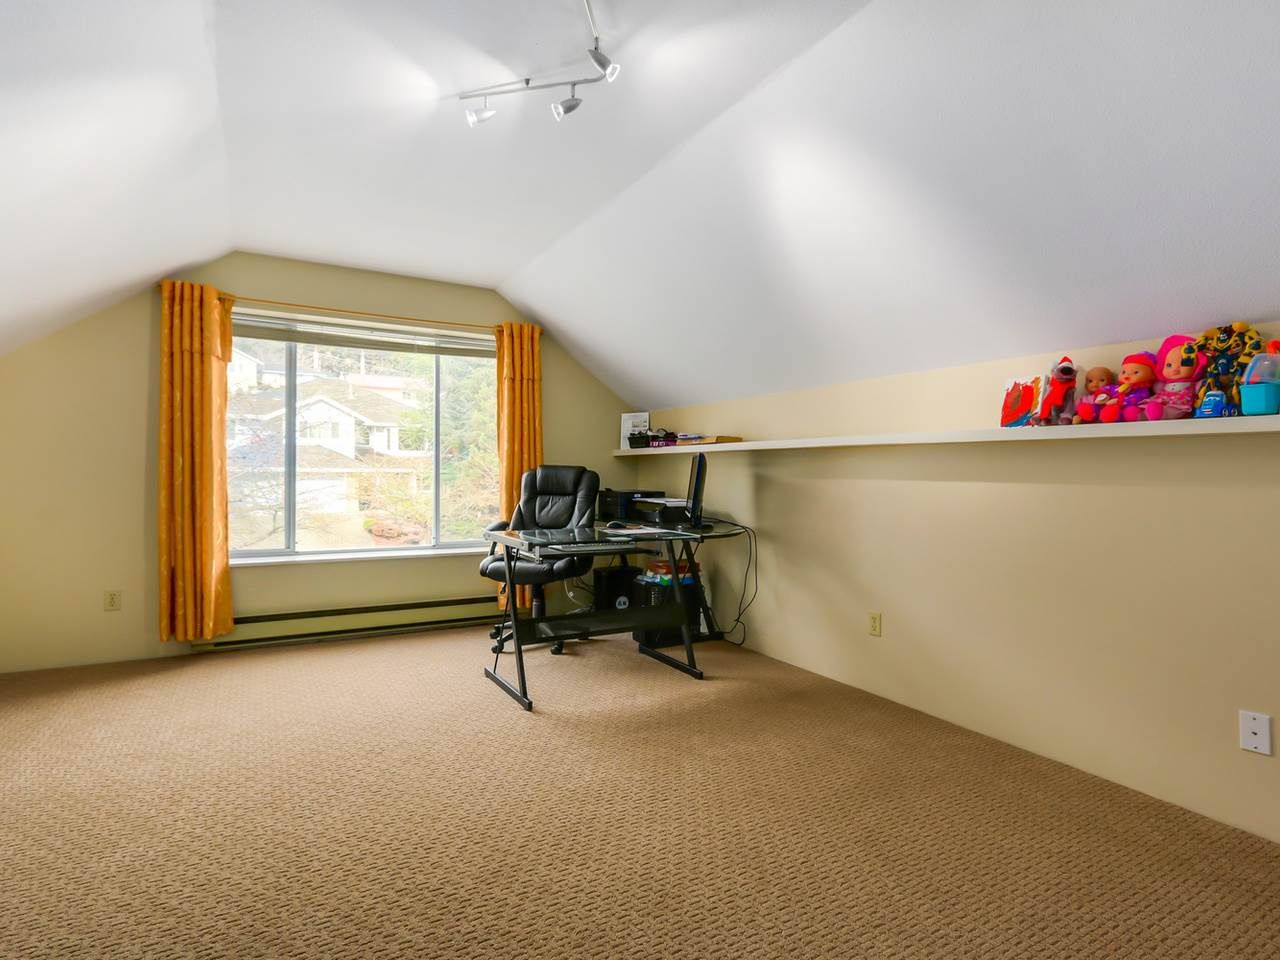 """Photo 17: Photos: 2868 TEMPE KNOLL Drive in North Vancouver: Tempe House for sale in """"TEMPE"""" : MLS®# R2046593"""